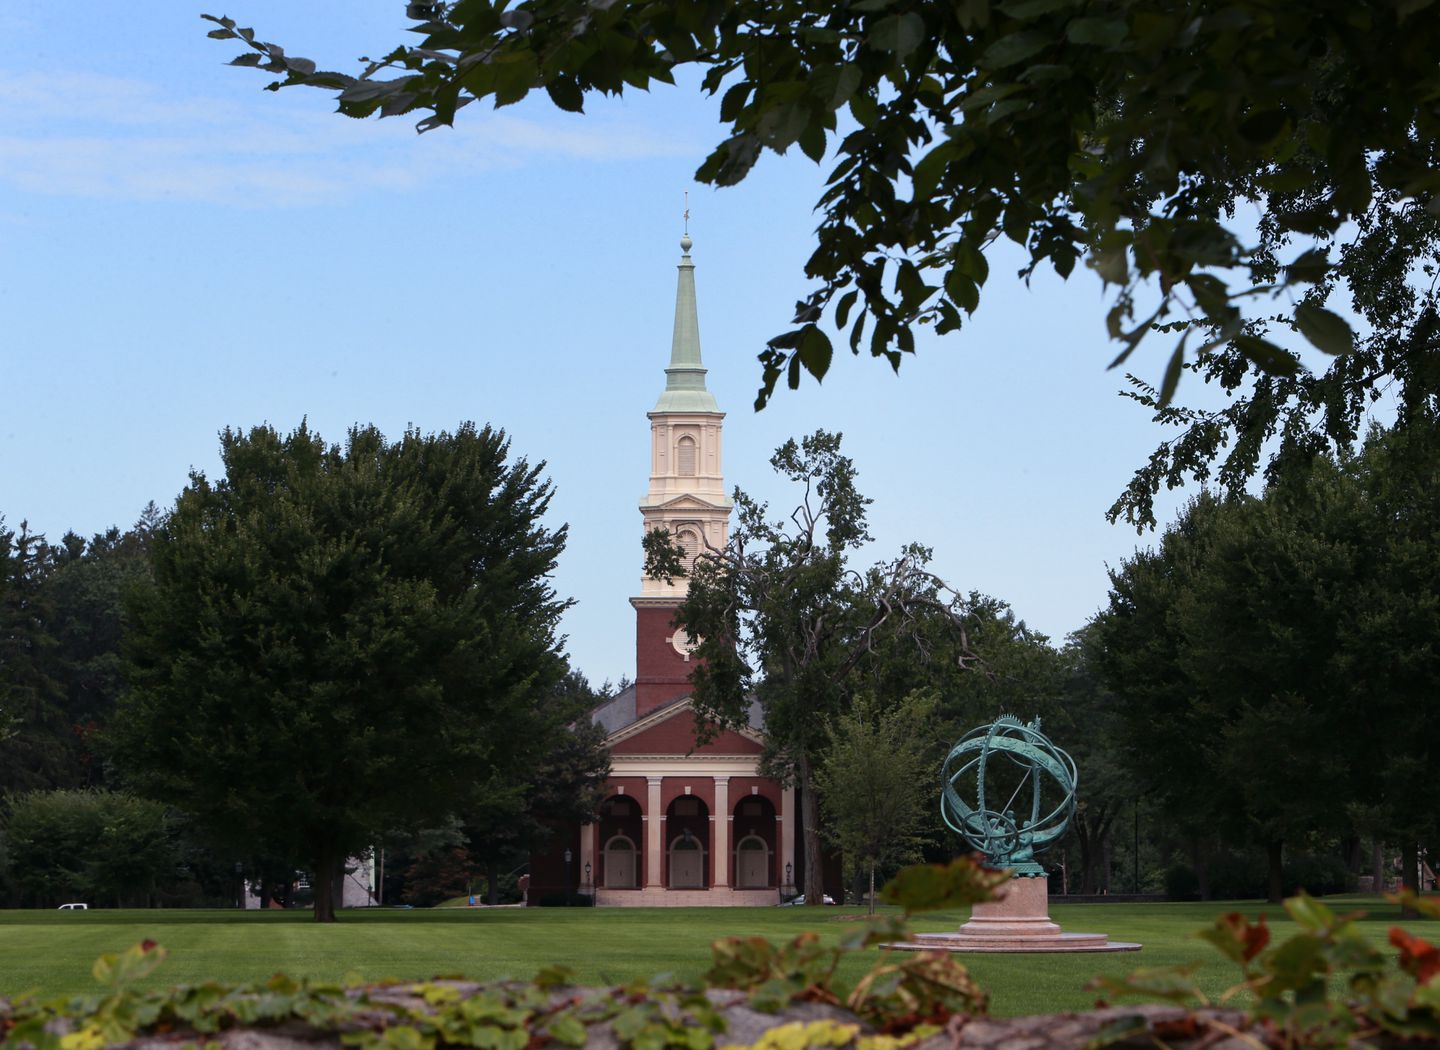 The Armillary Sphere sits in front of Cochran Chapel on the Phillips Academy campus.